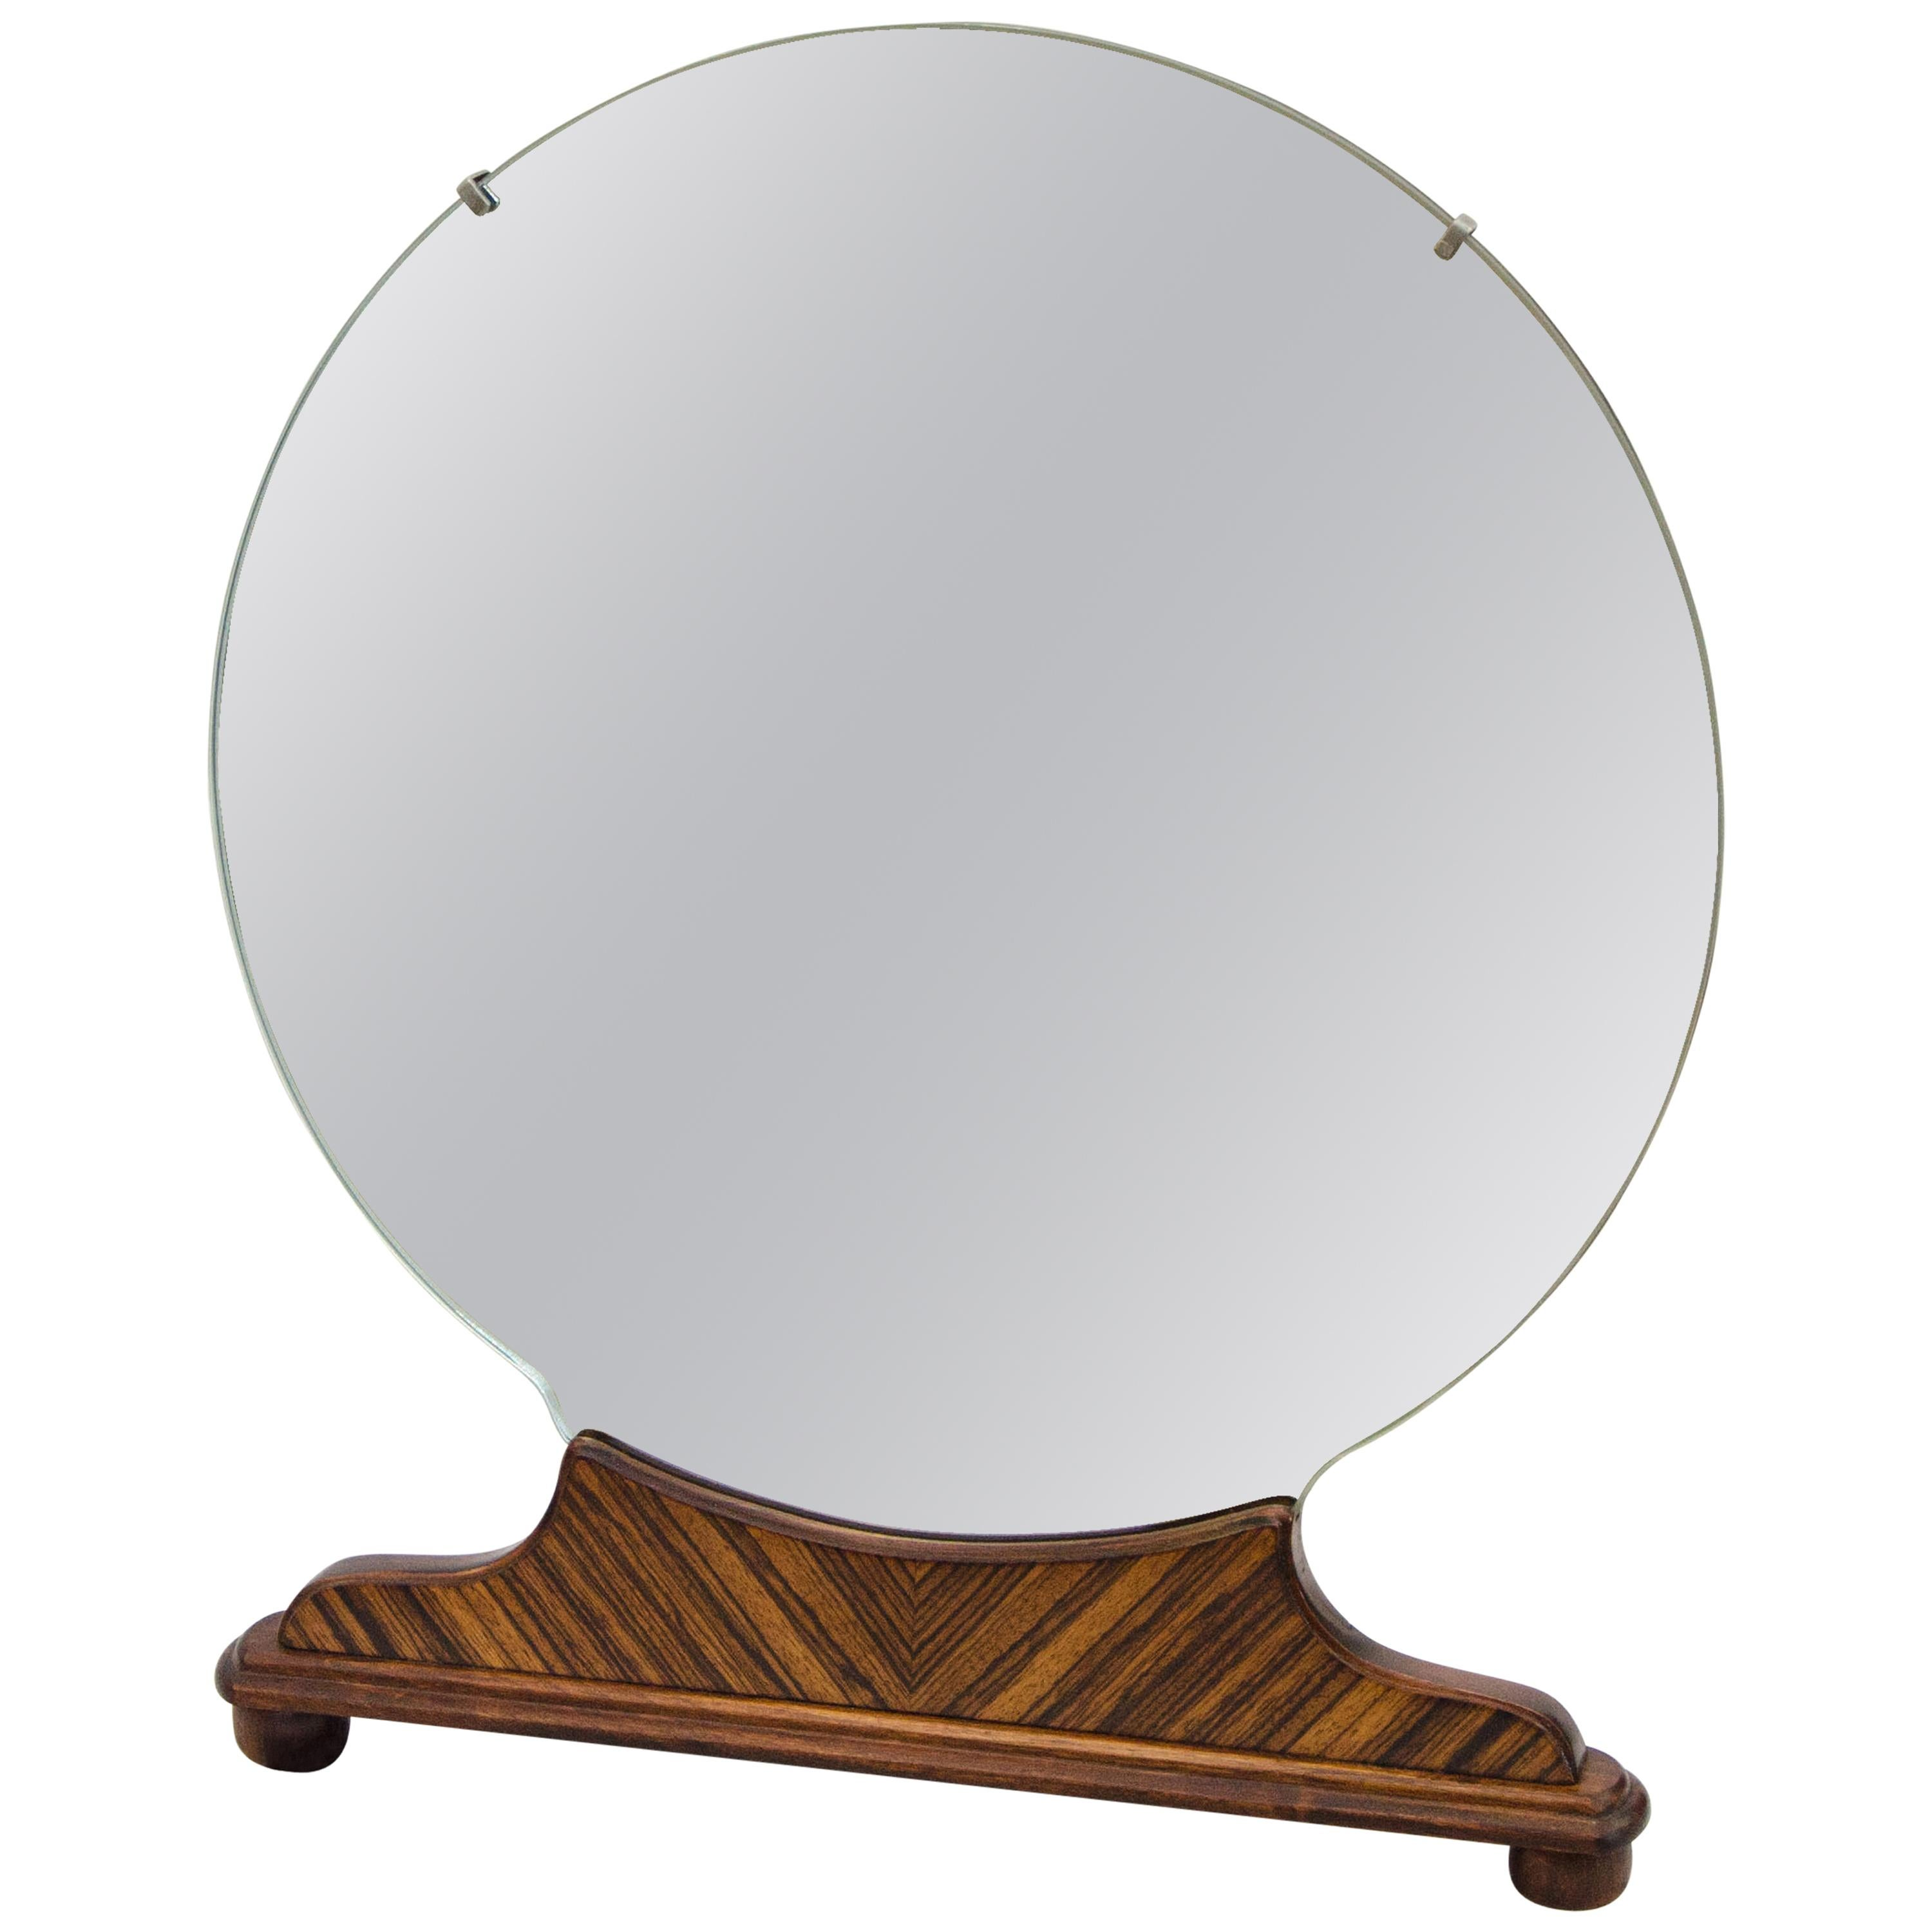 Art Deco Round Walnut Freestanding High-Boy Dresser Mirror